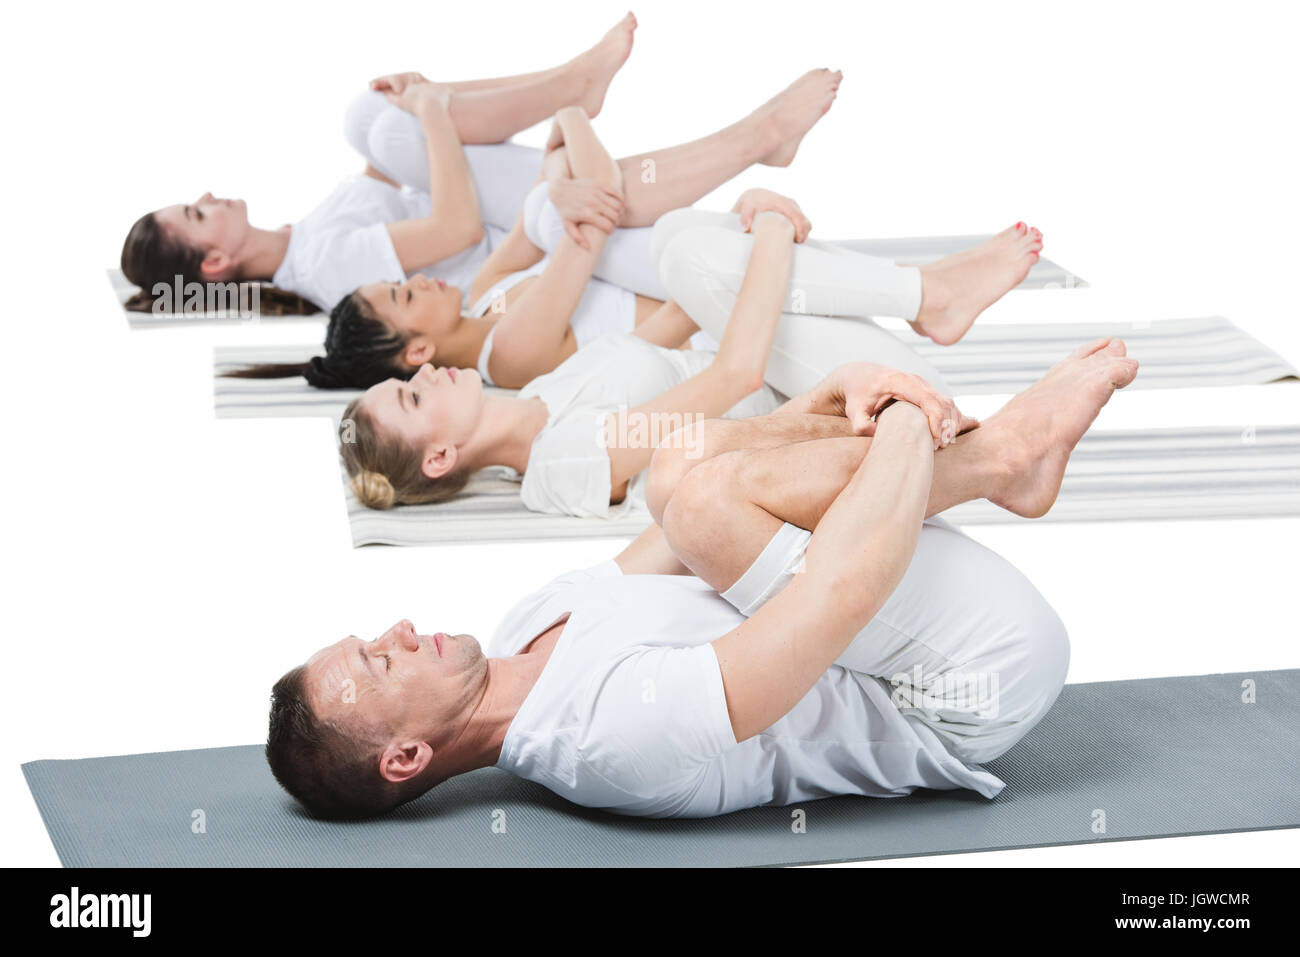 side view of people practicing yoga on yoga mats isolated on white - Stock Image